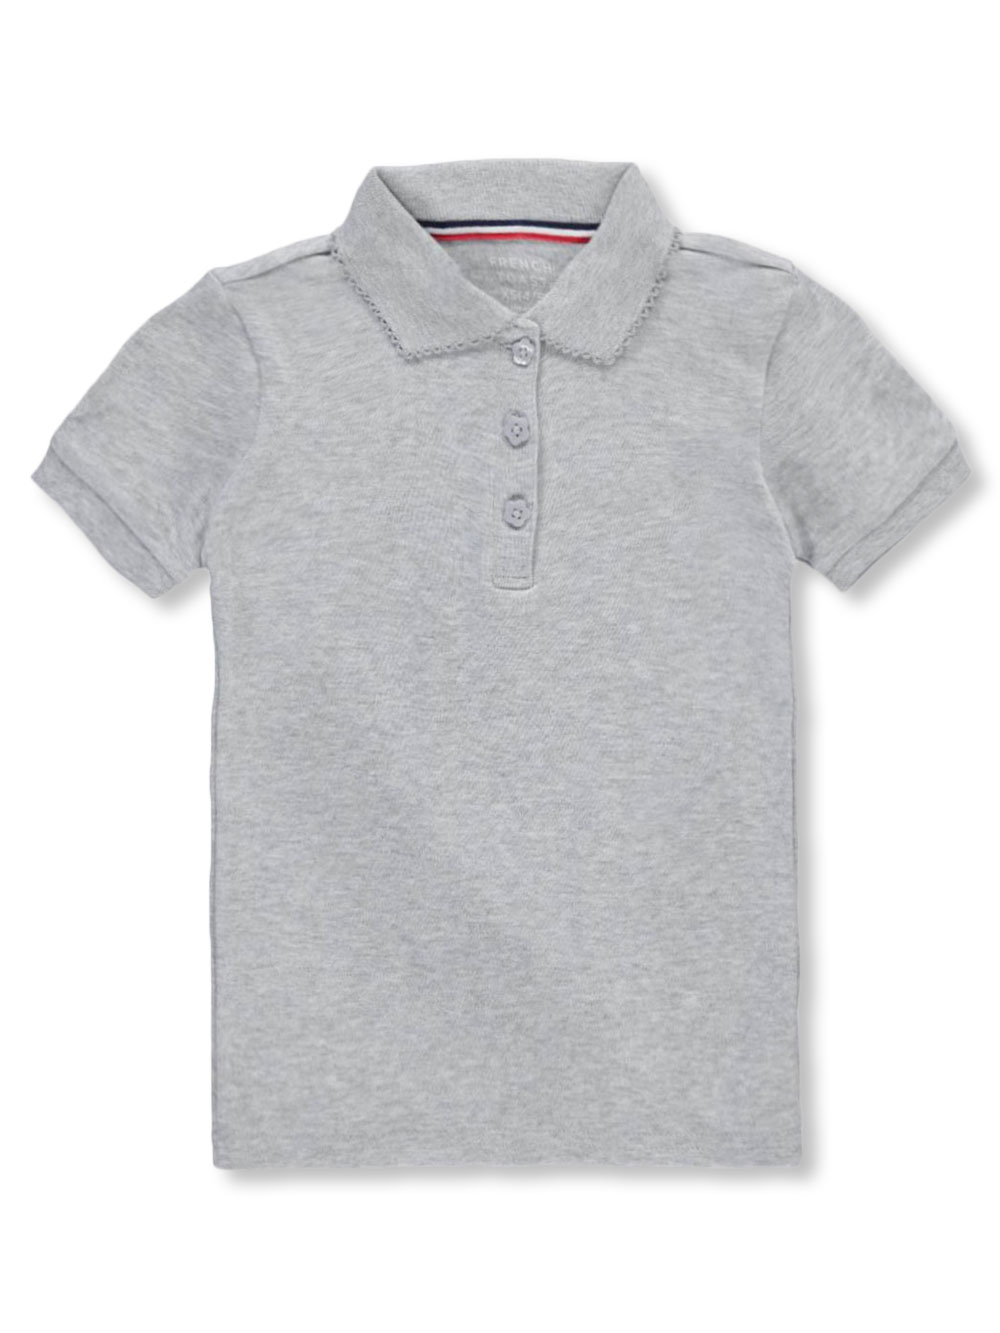 76eee557 French Toast Girls' S/S Fitted Knit Polo with Picot Collar